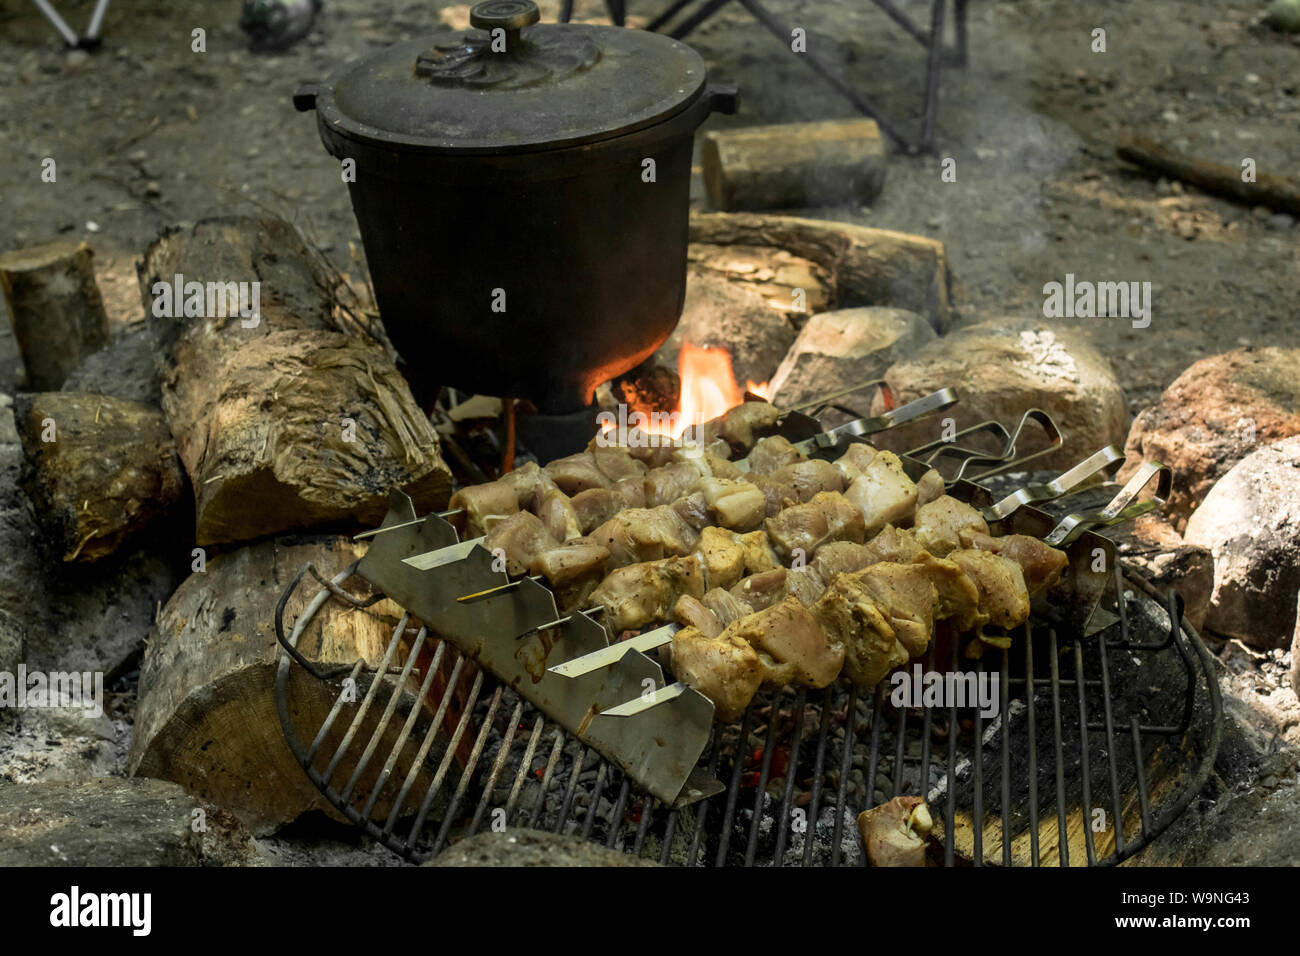 Camping Fireplace Cooking Fish Soup In Cauldron And Shashlik